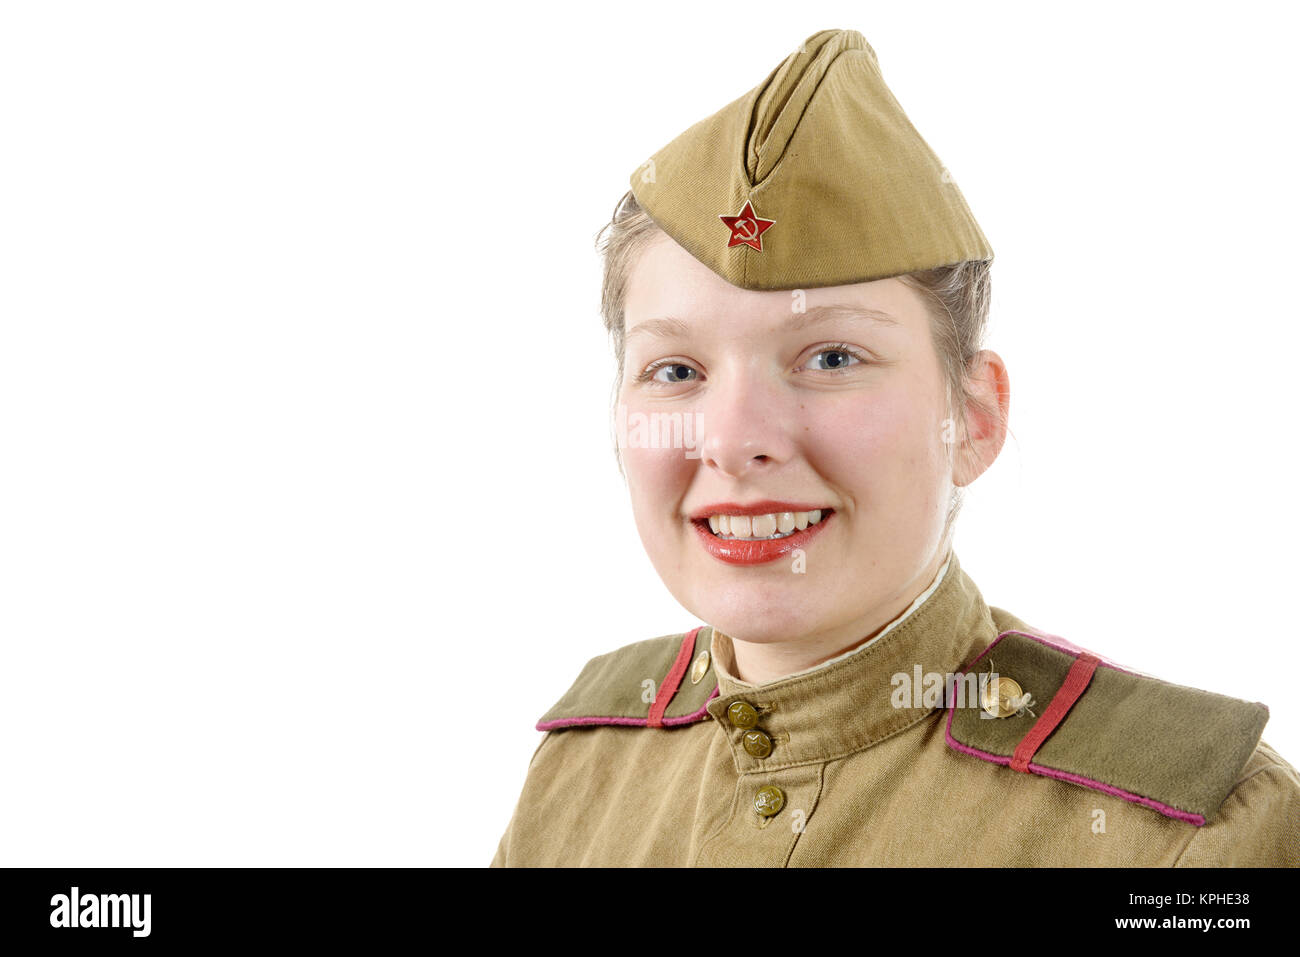 Smiling Russian Army Soldier Stock Photos & Smiling ...